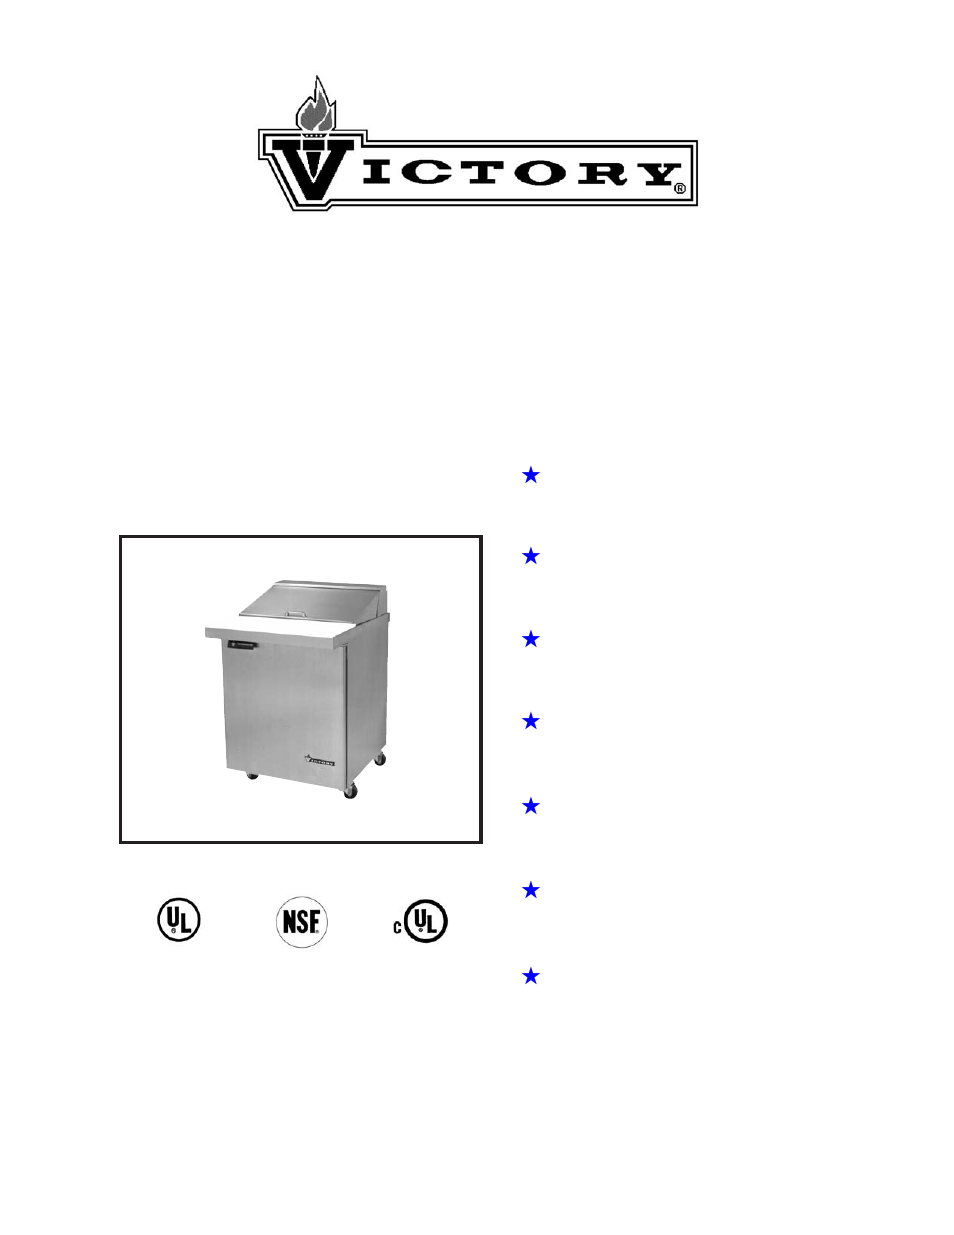 victory refrigerator wiring schematic victory ur-48-sbs user manual | 37 pages | also for: uf-48 ... admiral refrigerator wiring schematic #5